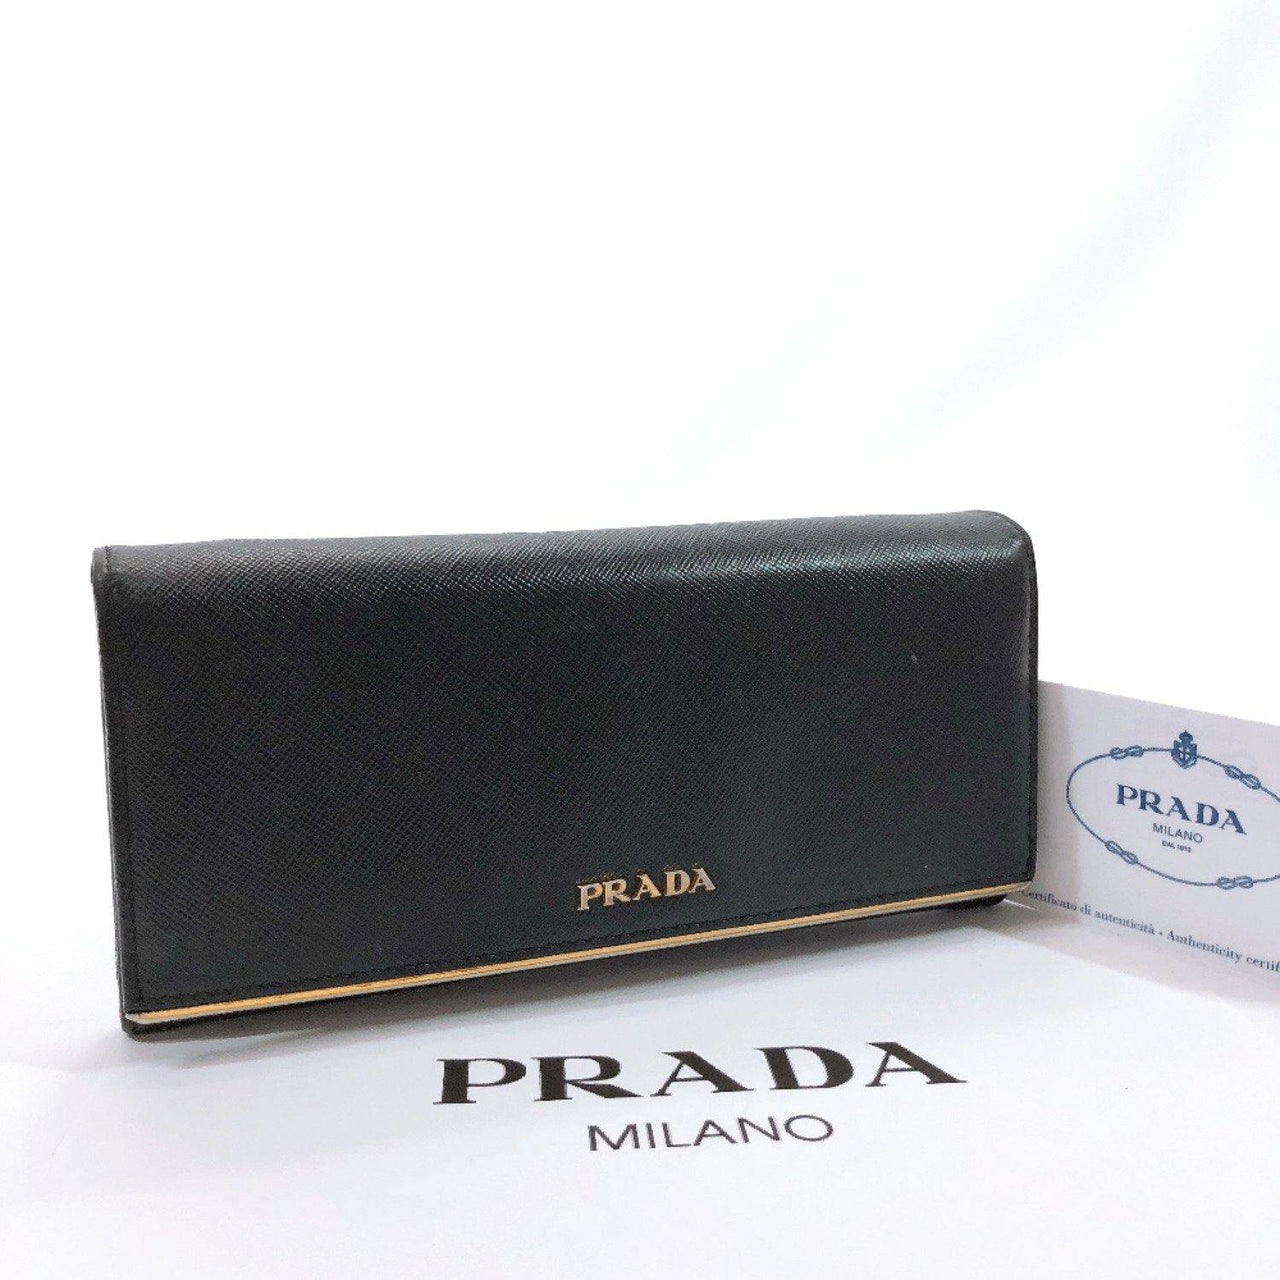 PRADA purse 1M1132 Safiano leather black Gold Hardware Women Used - JP-BRANDS.com